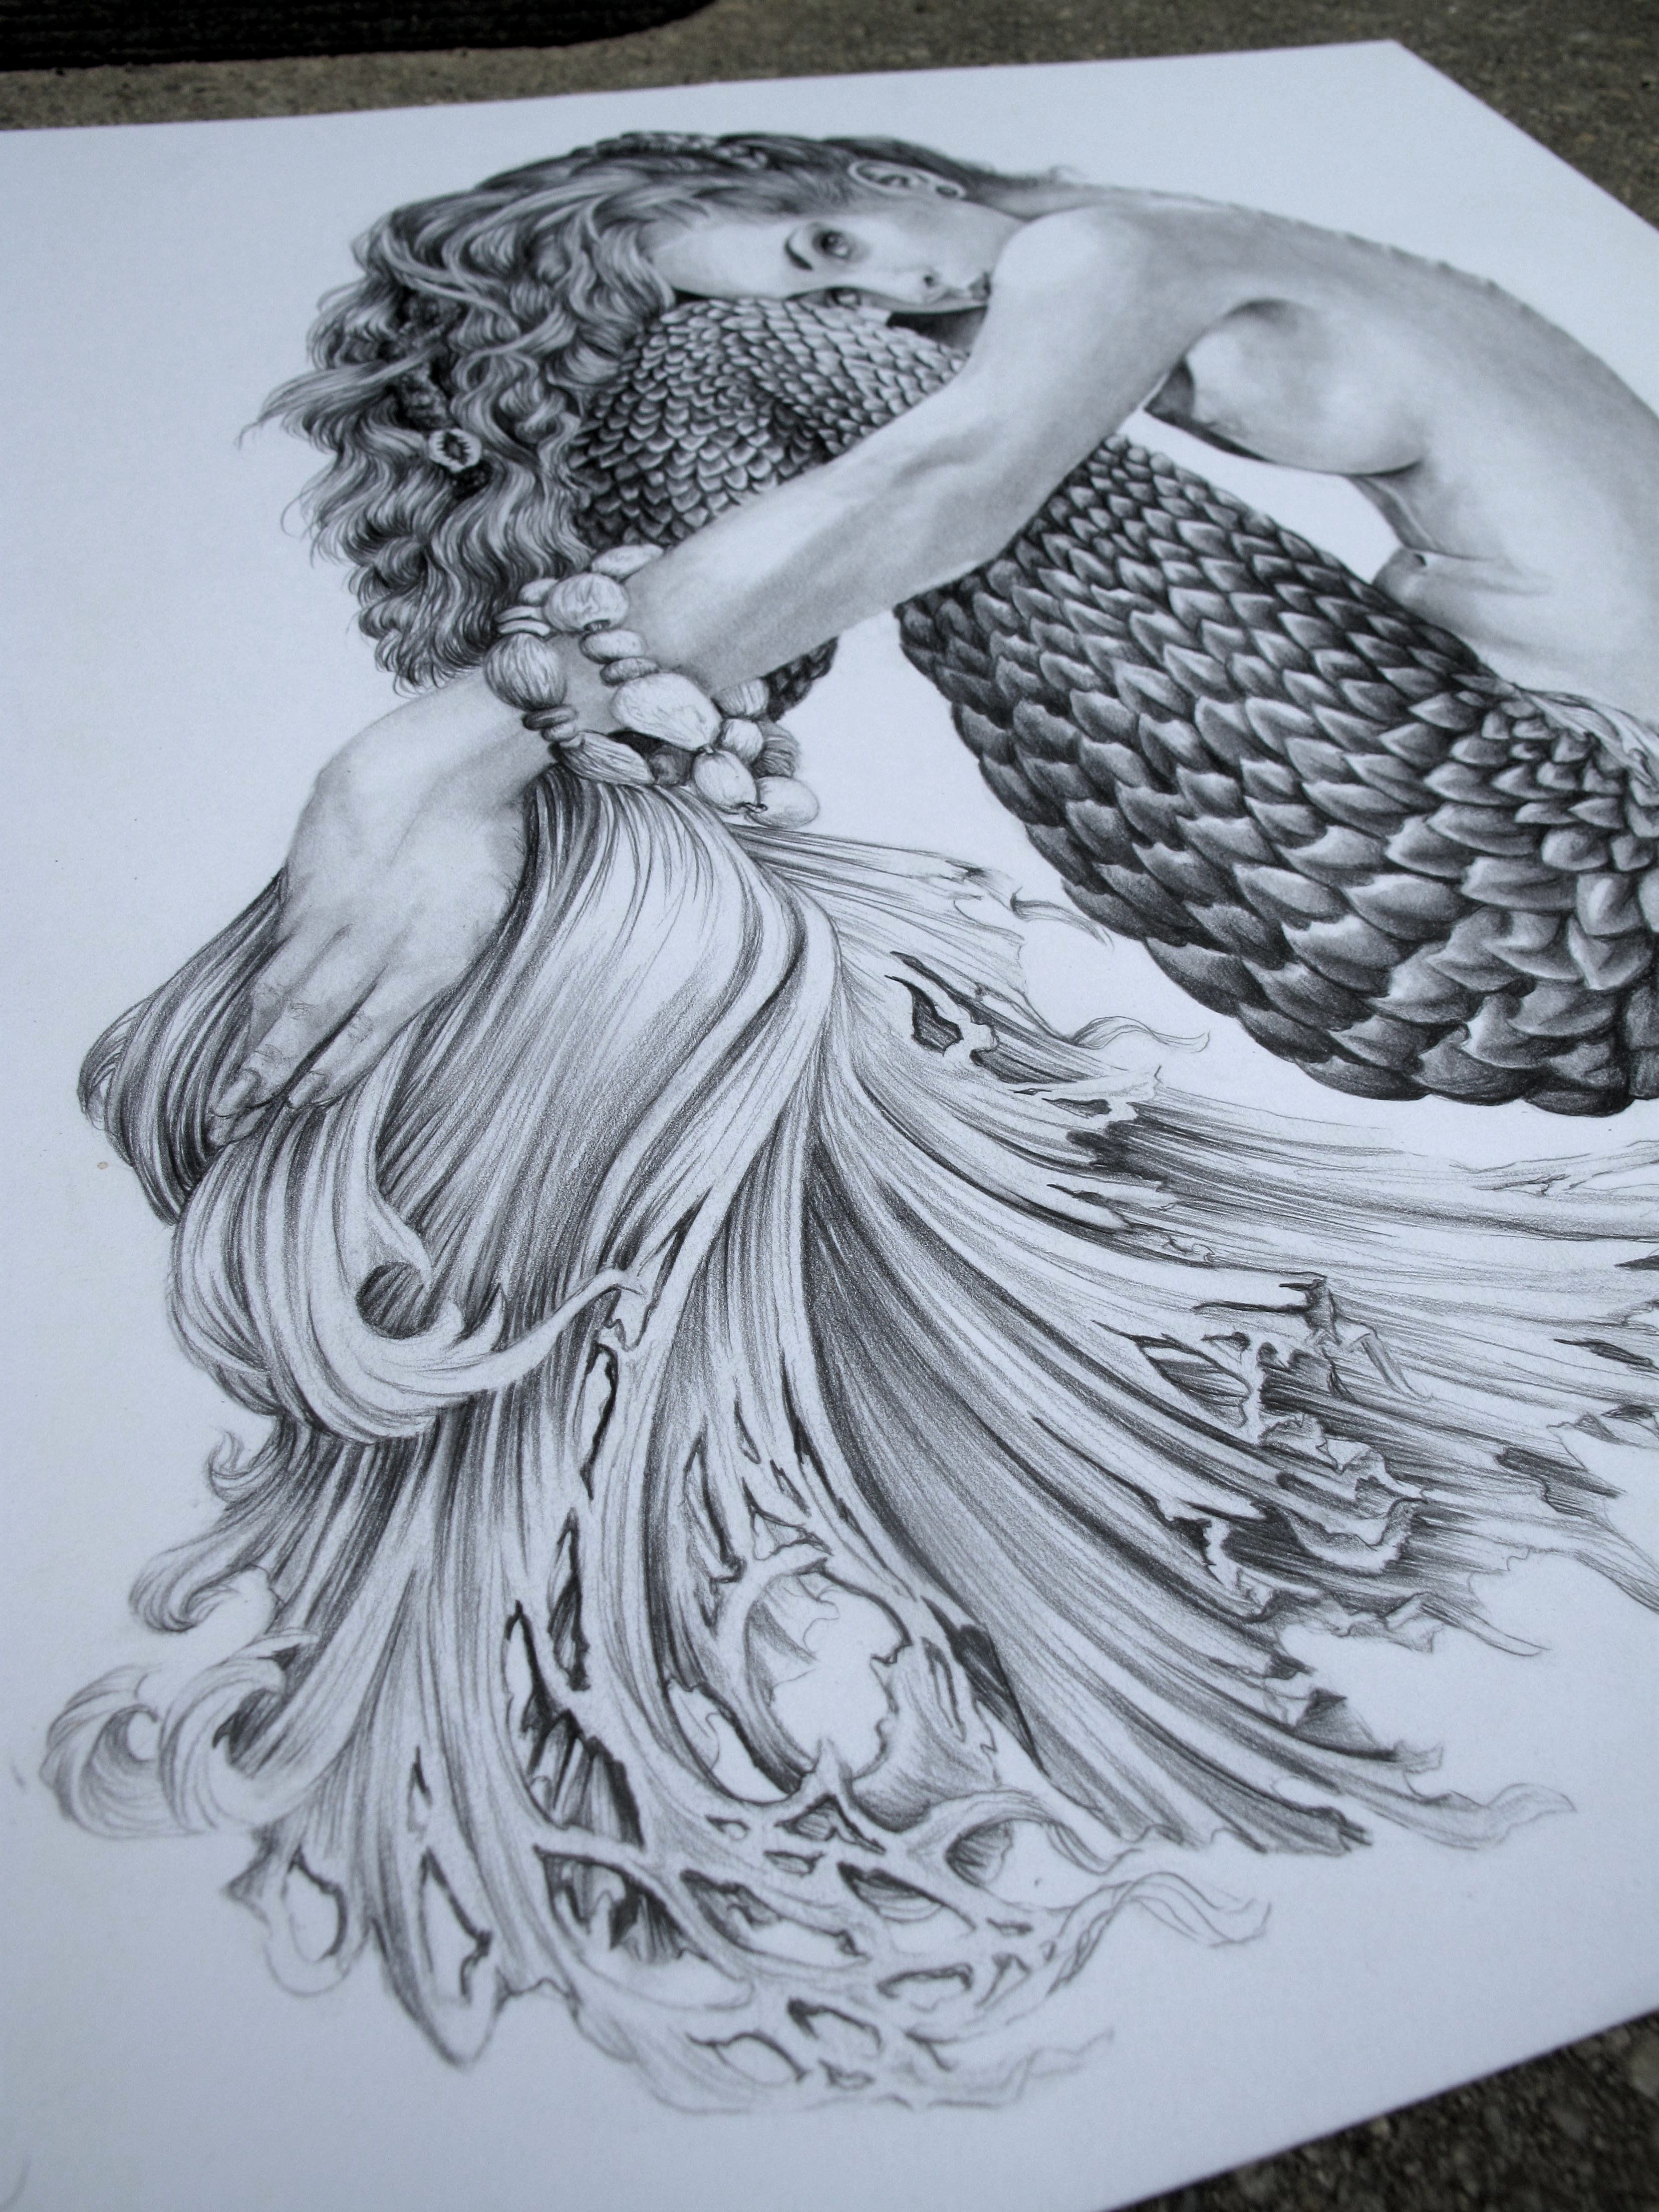 Breasted Mermaid Art Created 14 X 17 Recycled Bristol Graphite. .05 And